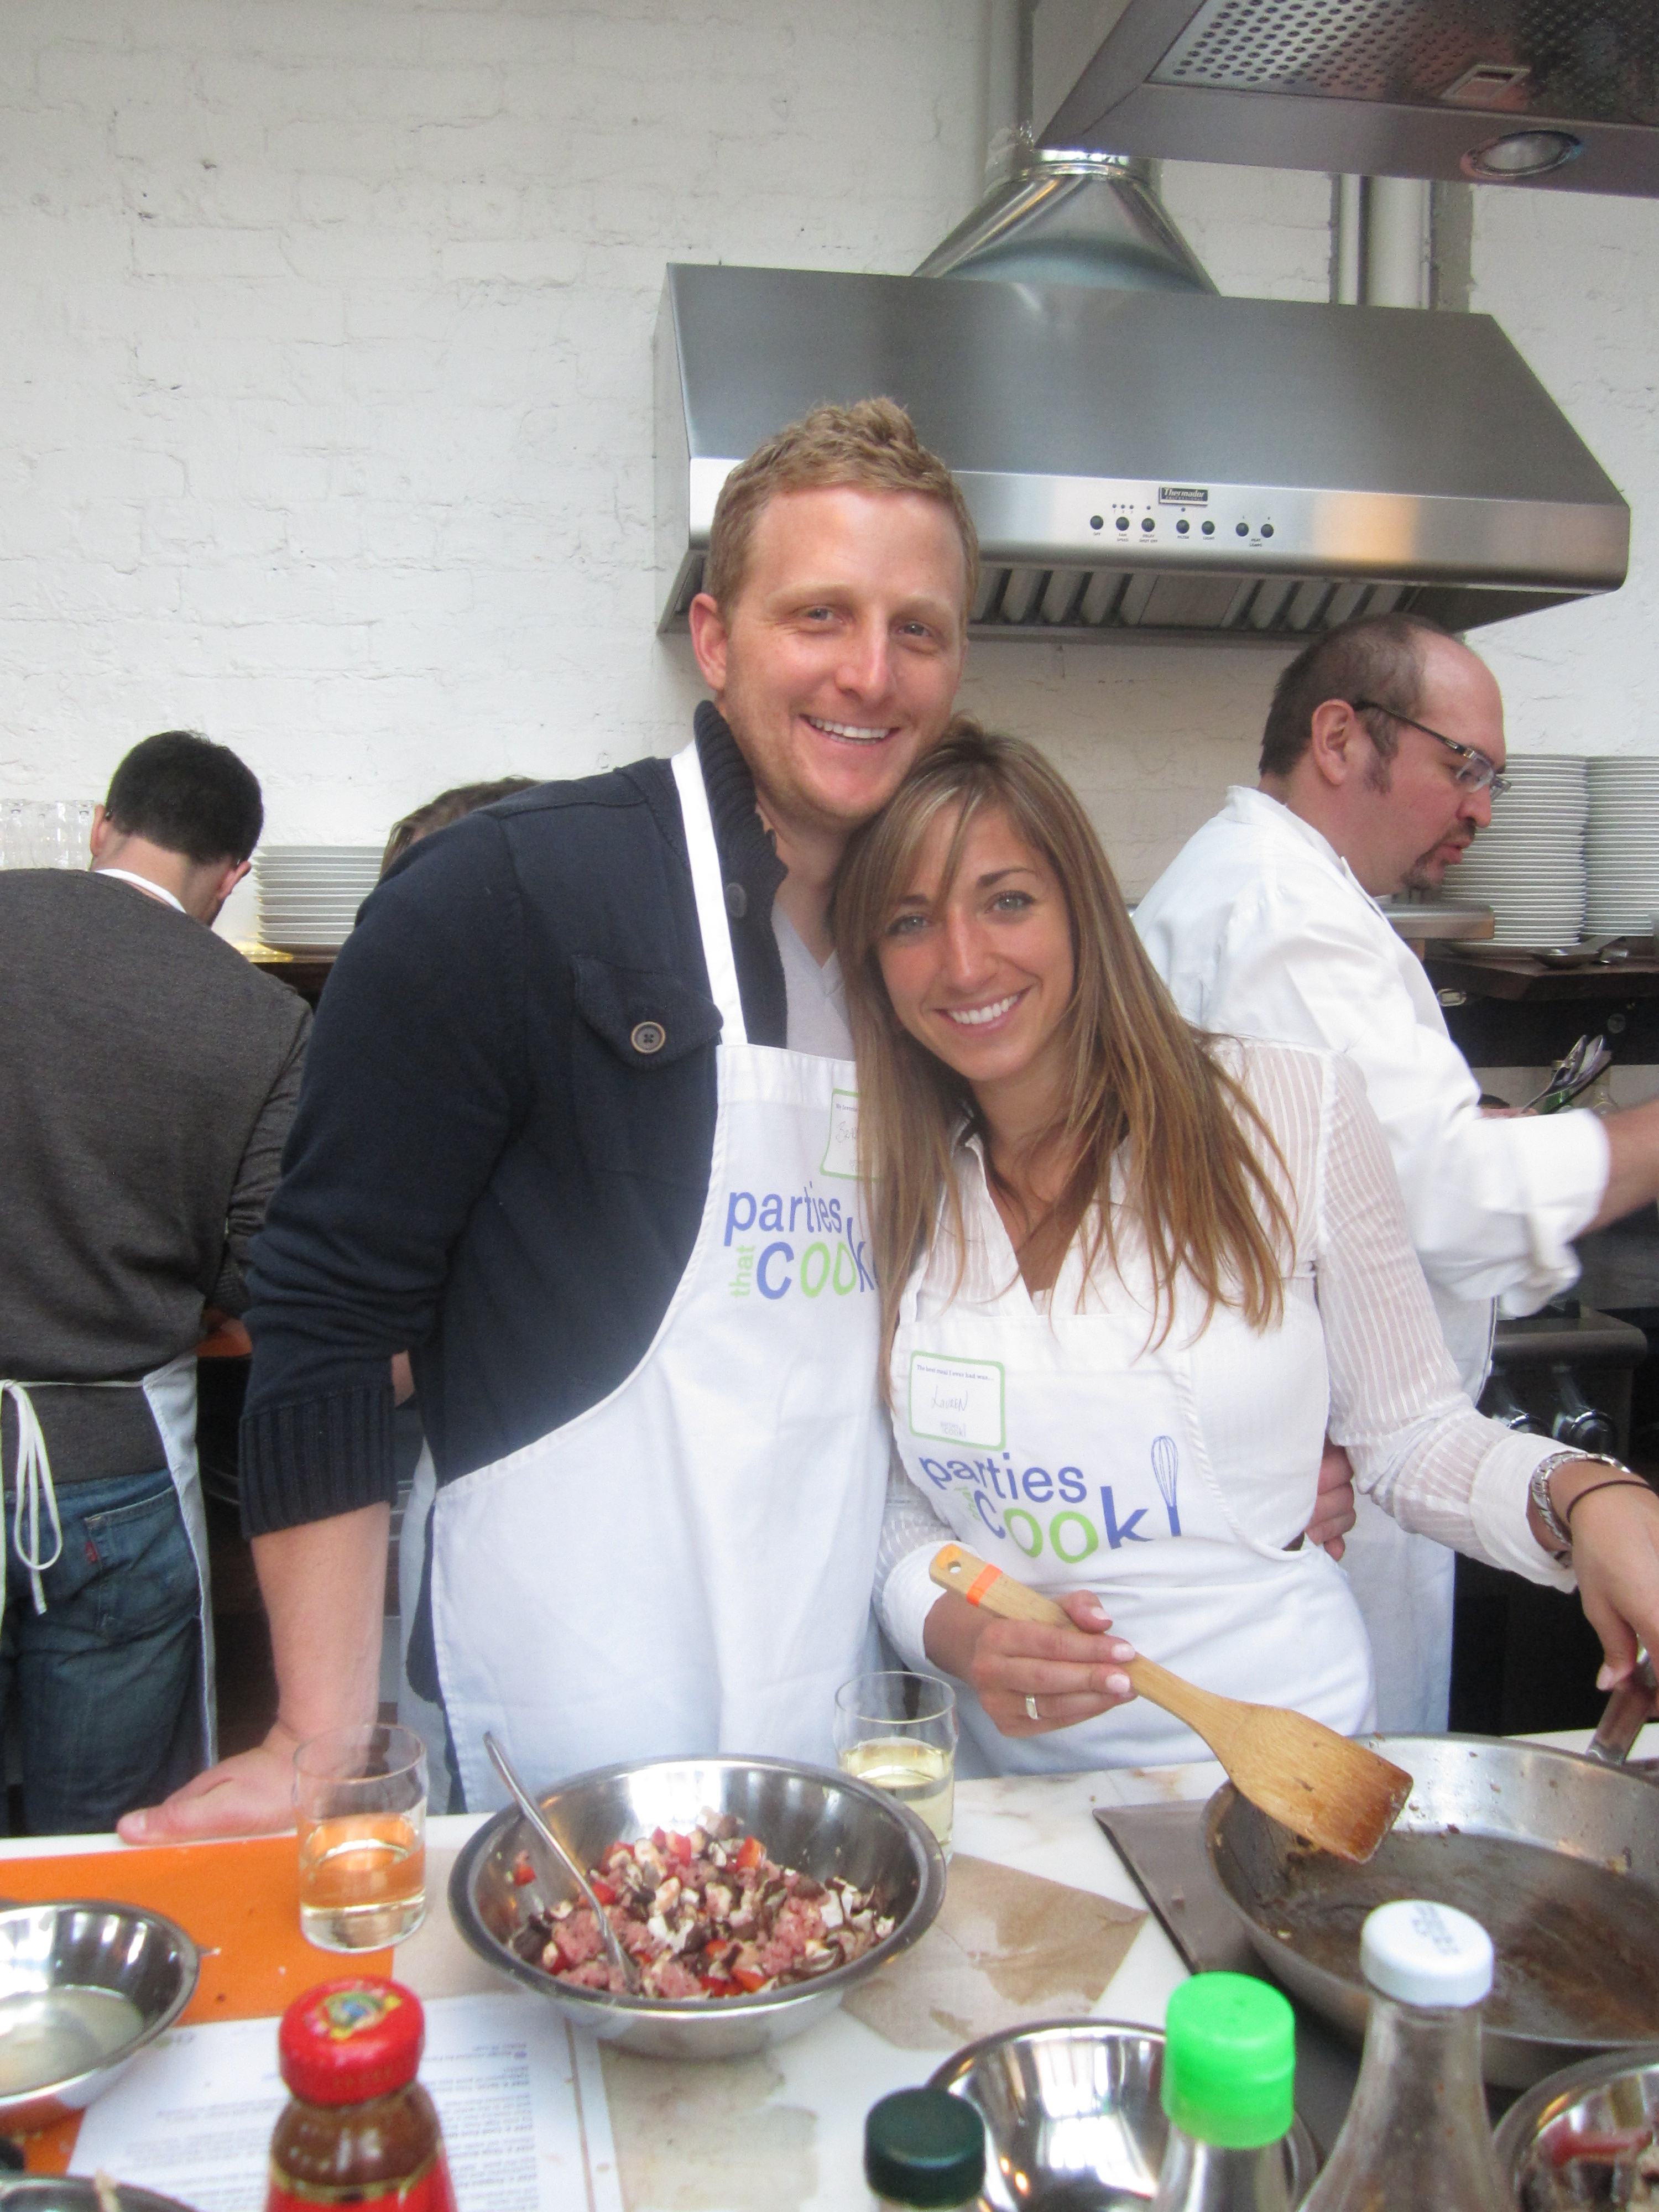 Parties That Cook Promotes Love with Valentines Day Couples